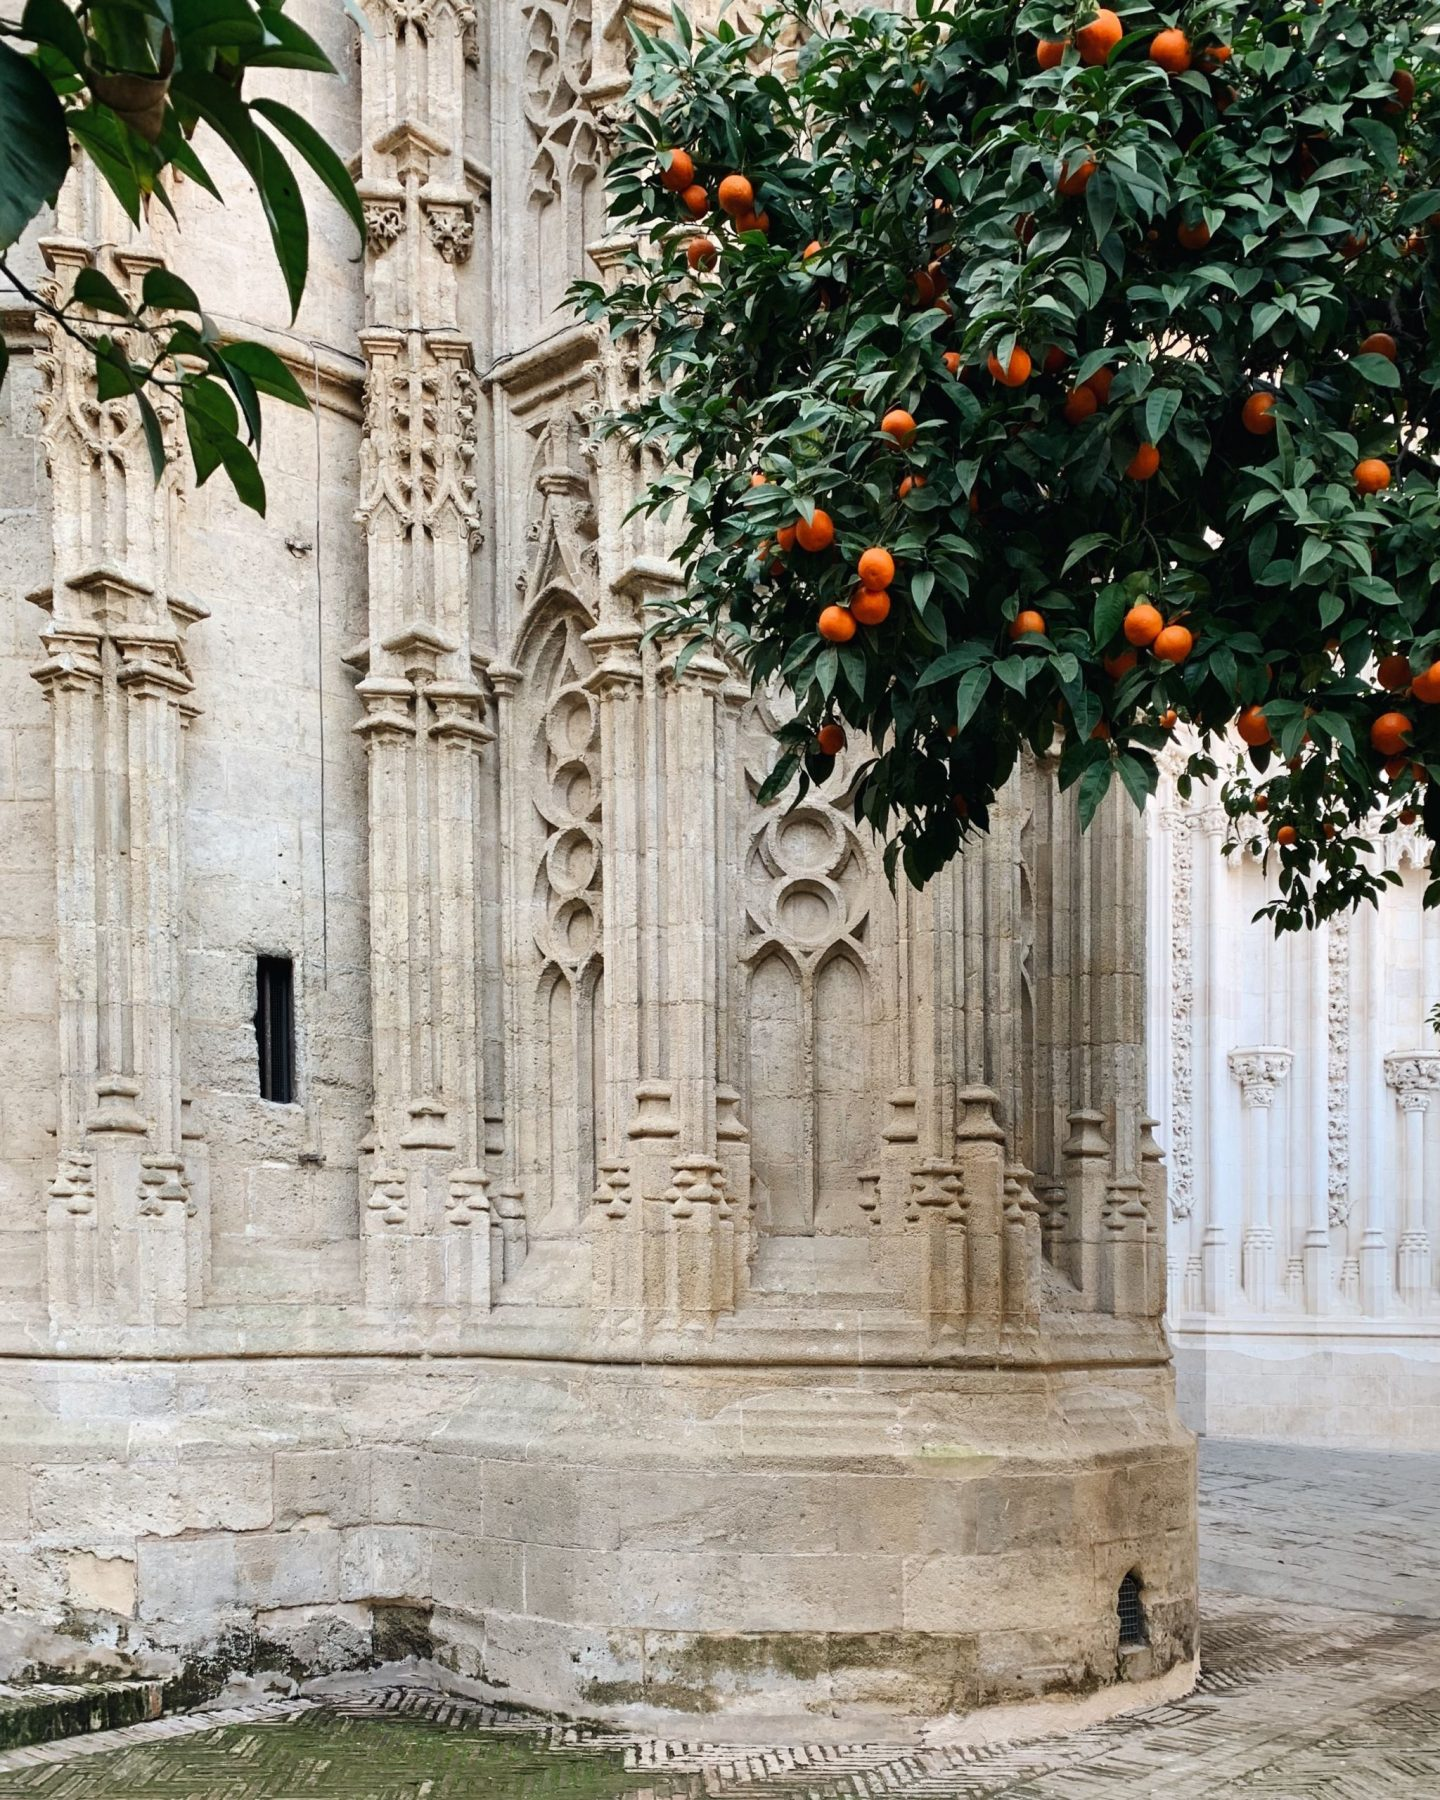 A weekend in Seville